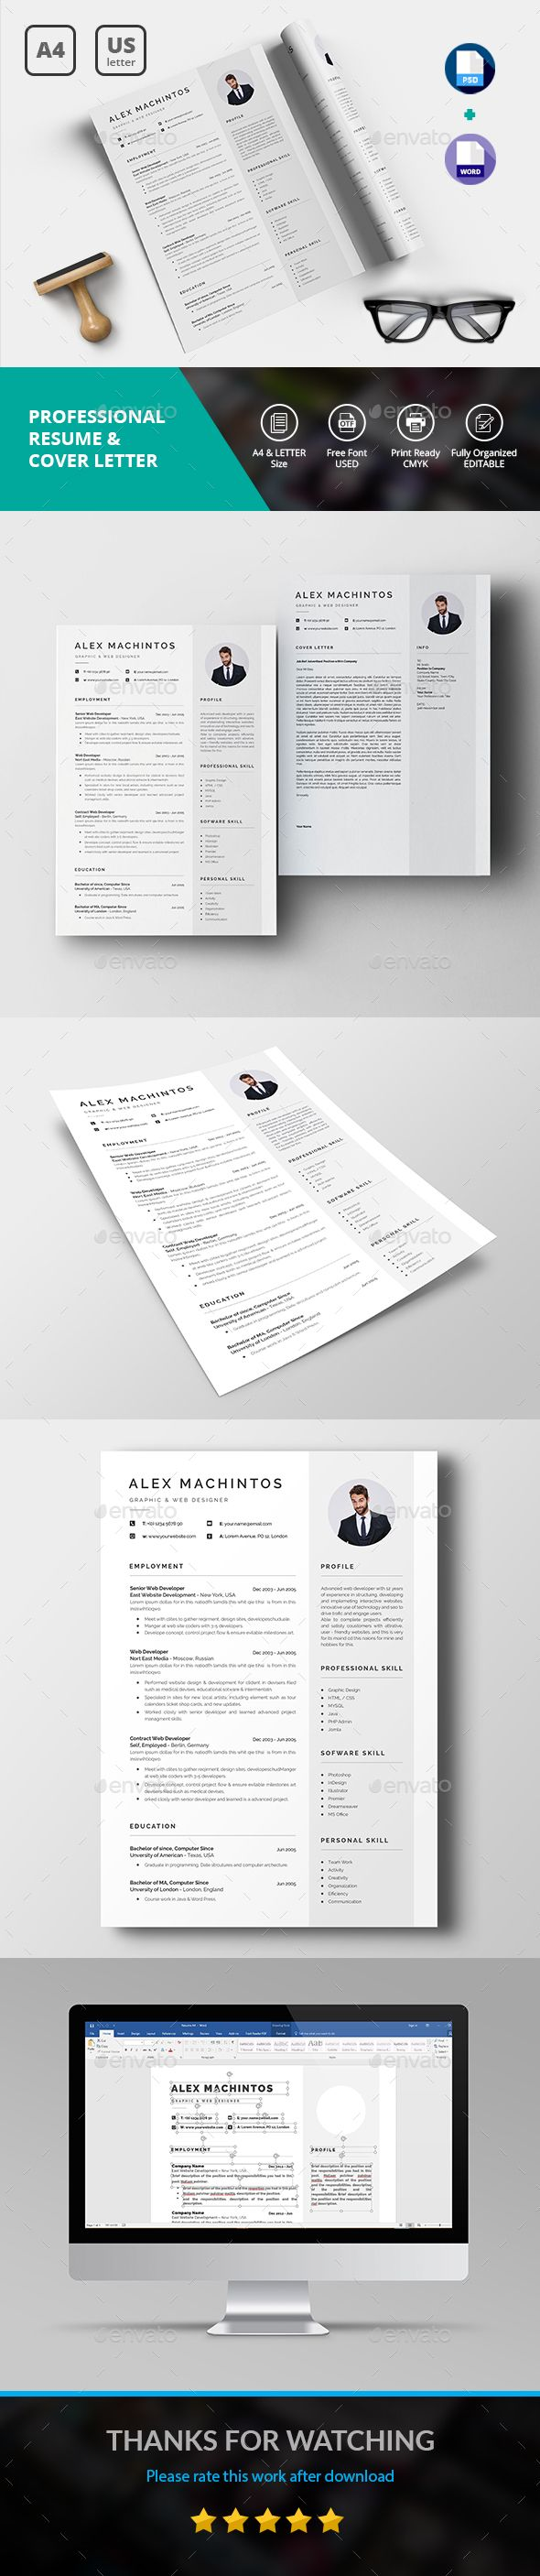 Cv Templates Design%0A  clean  minimalist  simple  modern  professional  Resume  CV  template